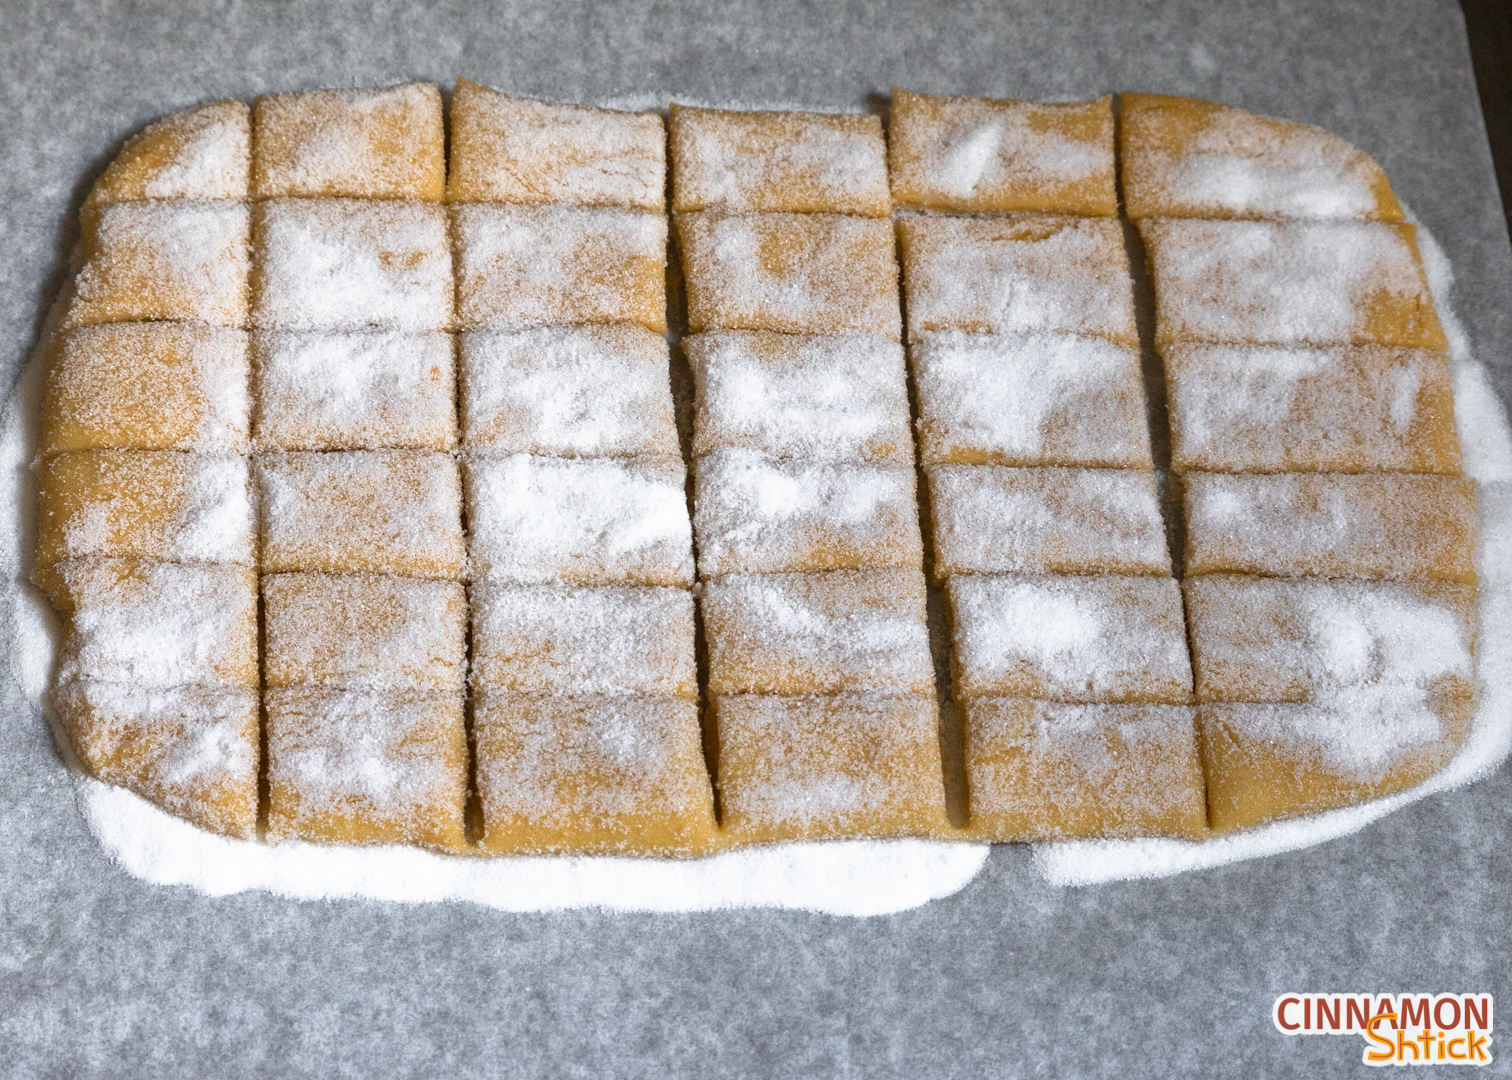 kichel dough cut into 1 inch by 2 inch rectangles